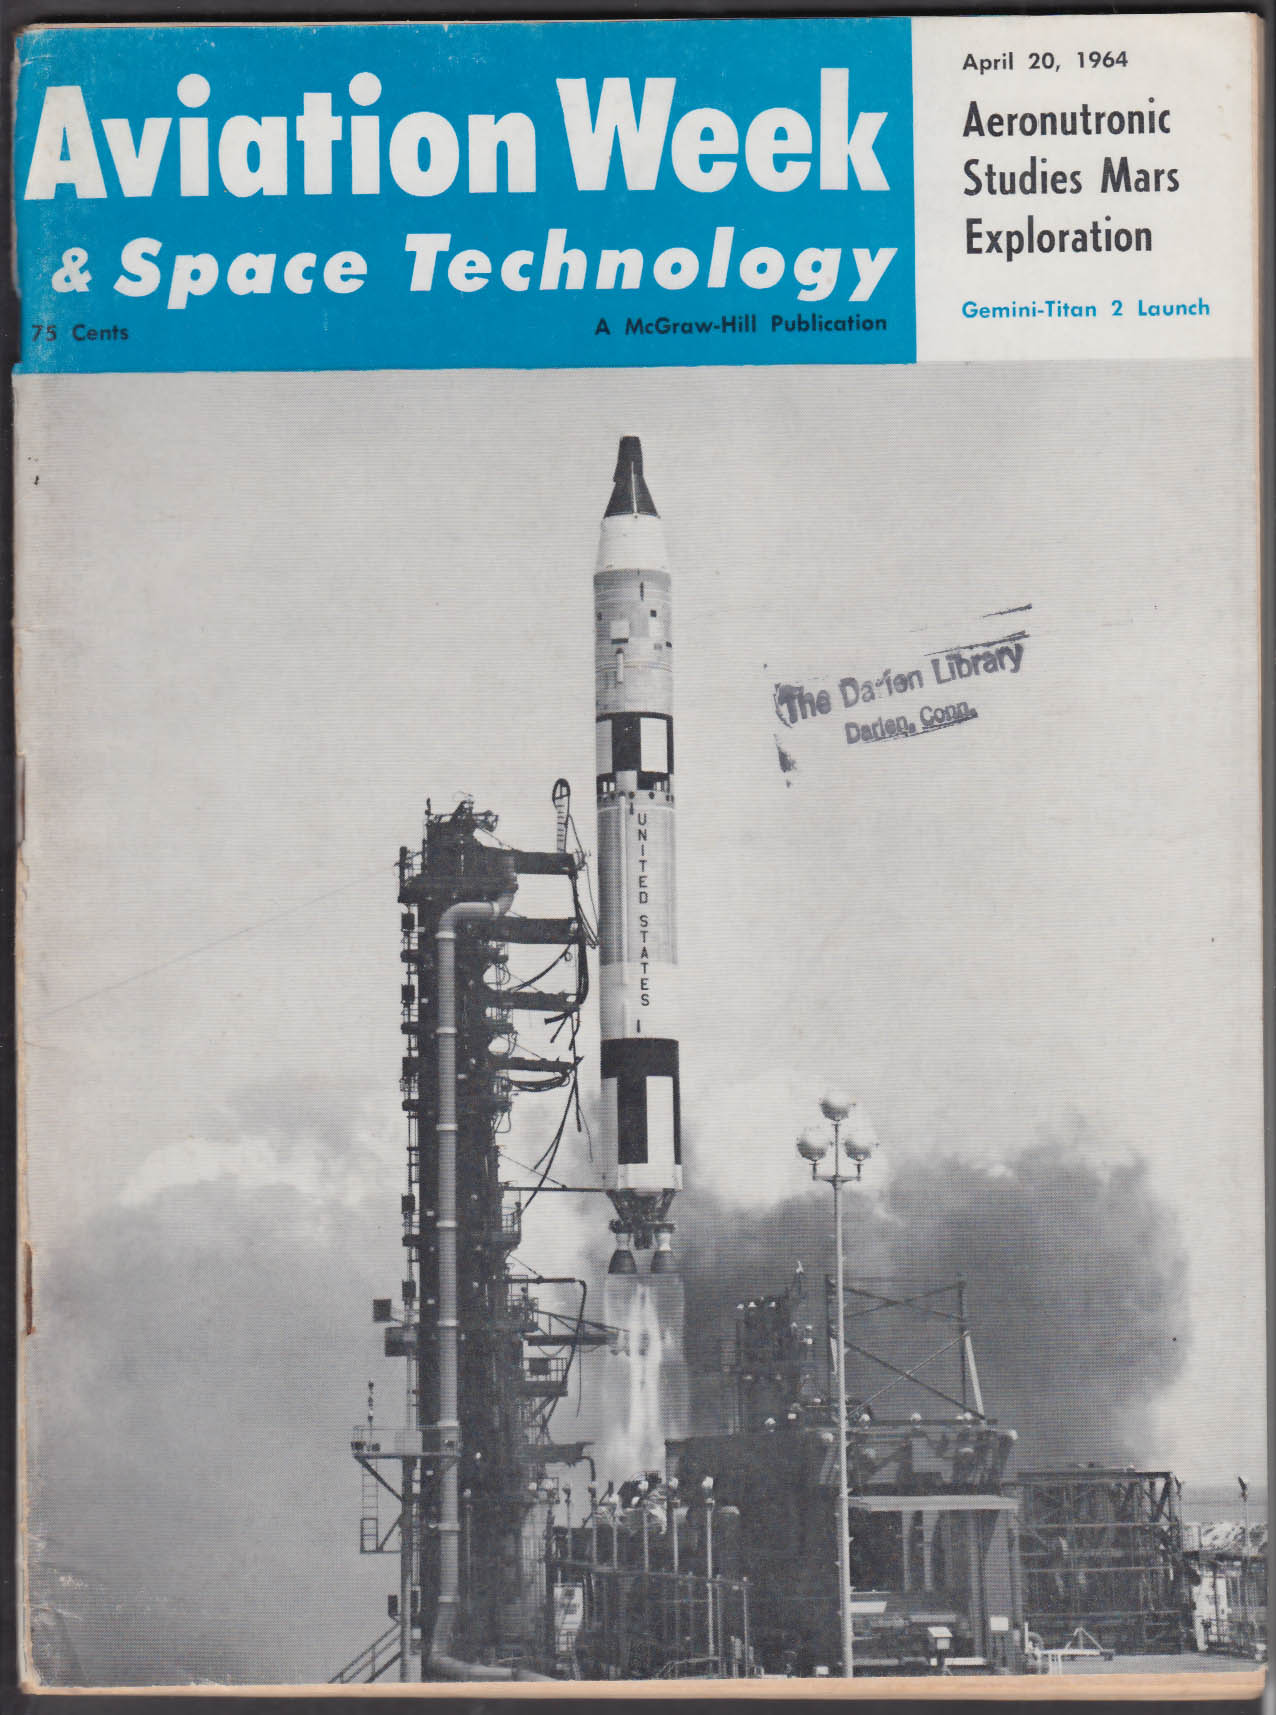 AVIATION WEEK & SPACE TECHNOLOGY Vietnam Helicopters NASA USAF ++ 4/20 1964